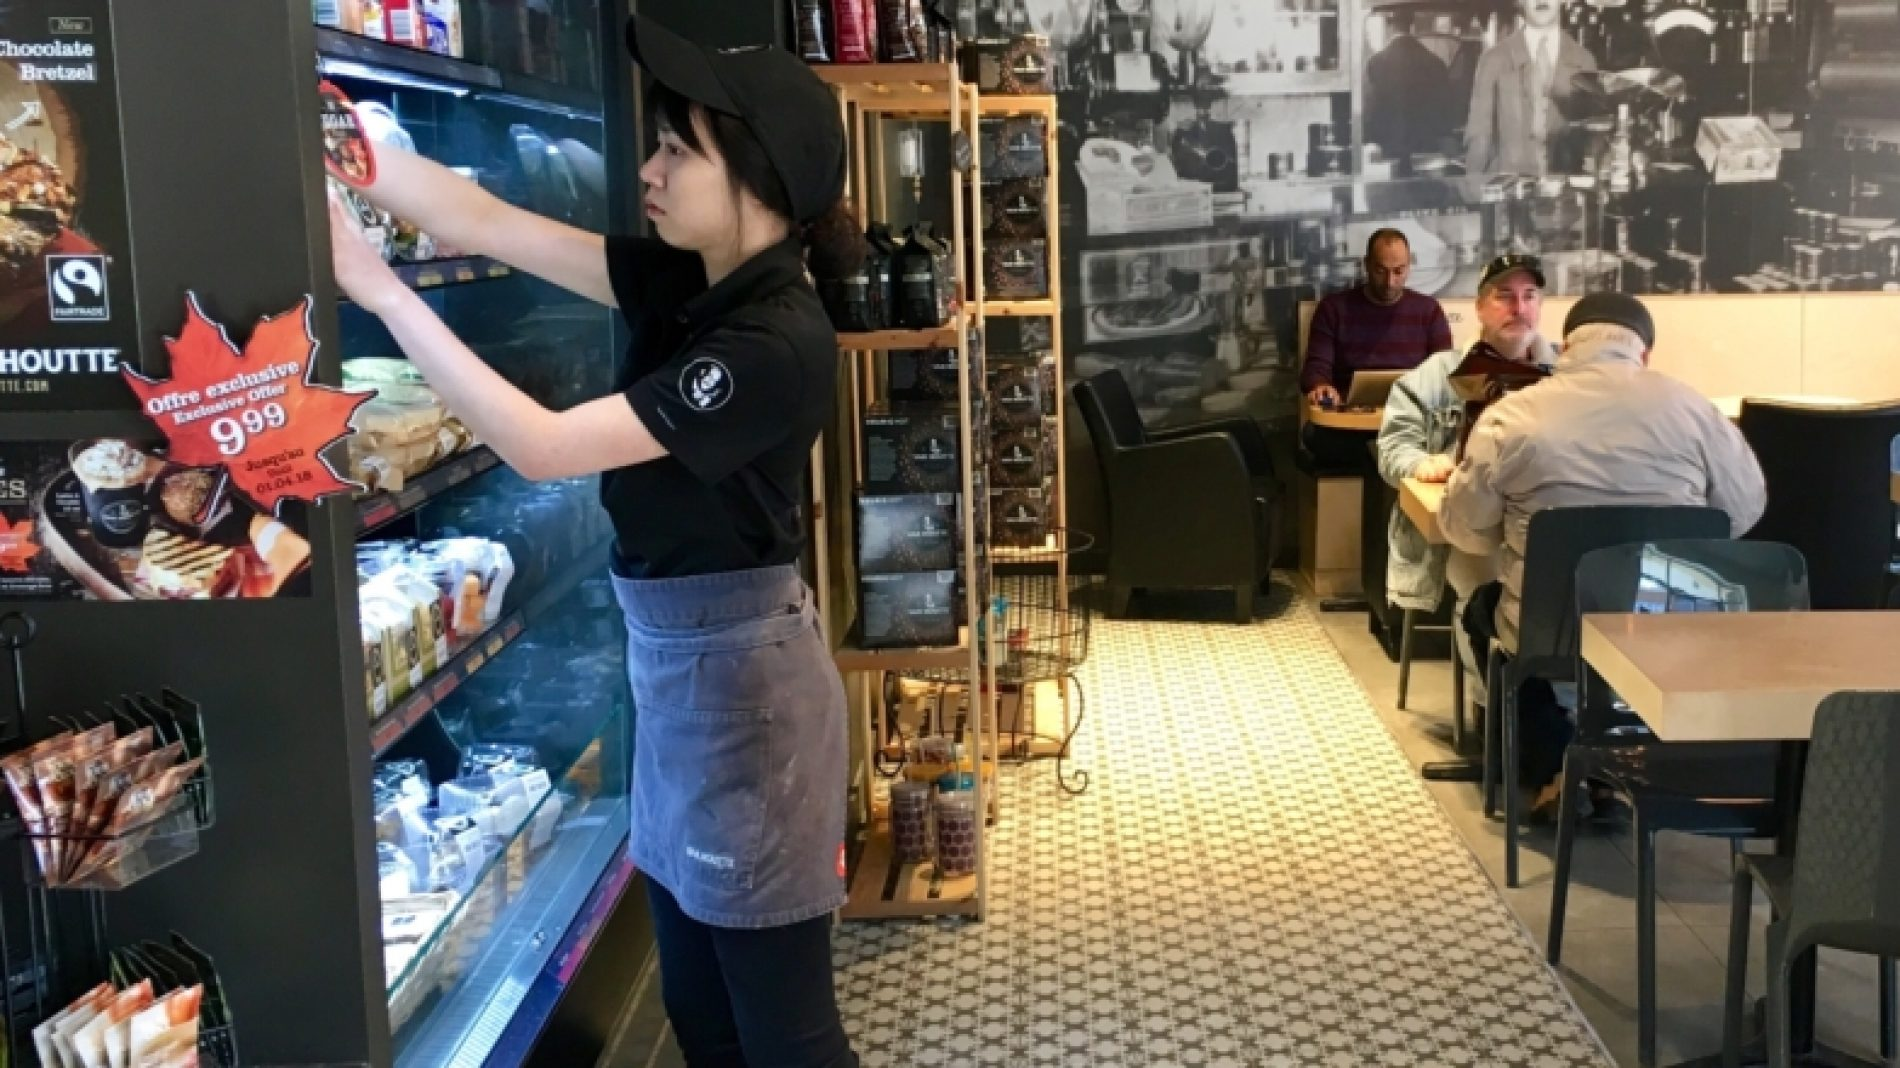 cafe-employee-placing-products-on-the-shelf_t20_8l69gZ-mT7THG